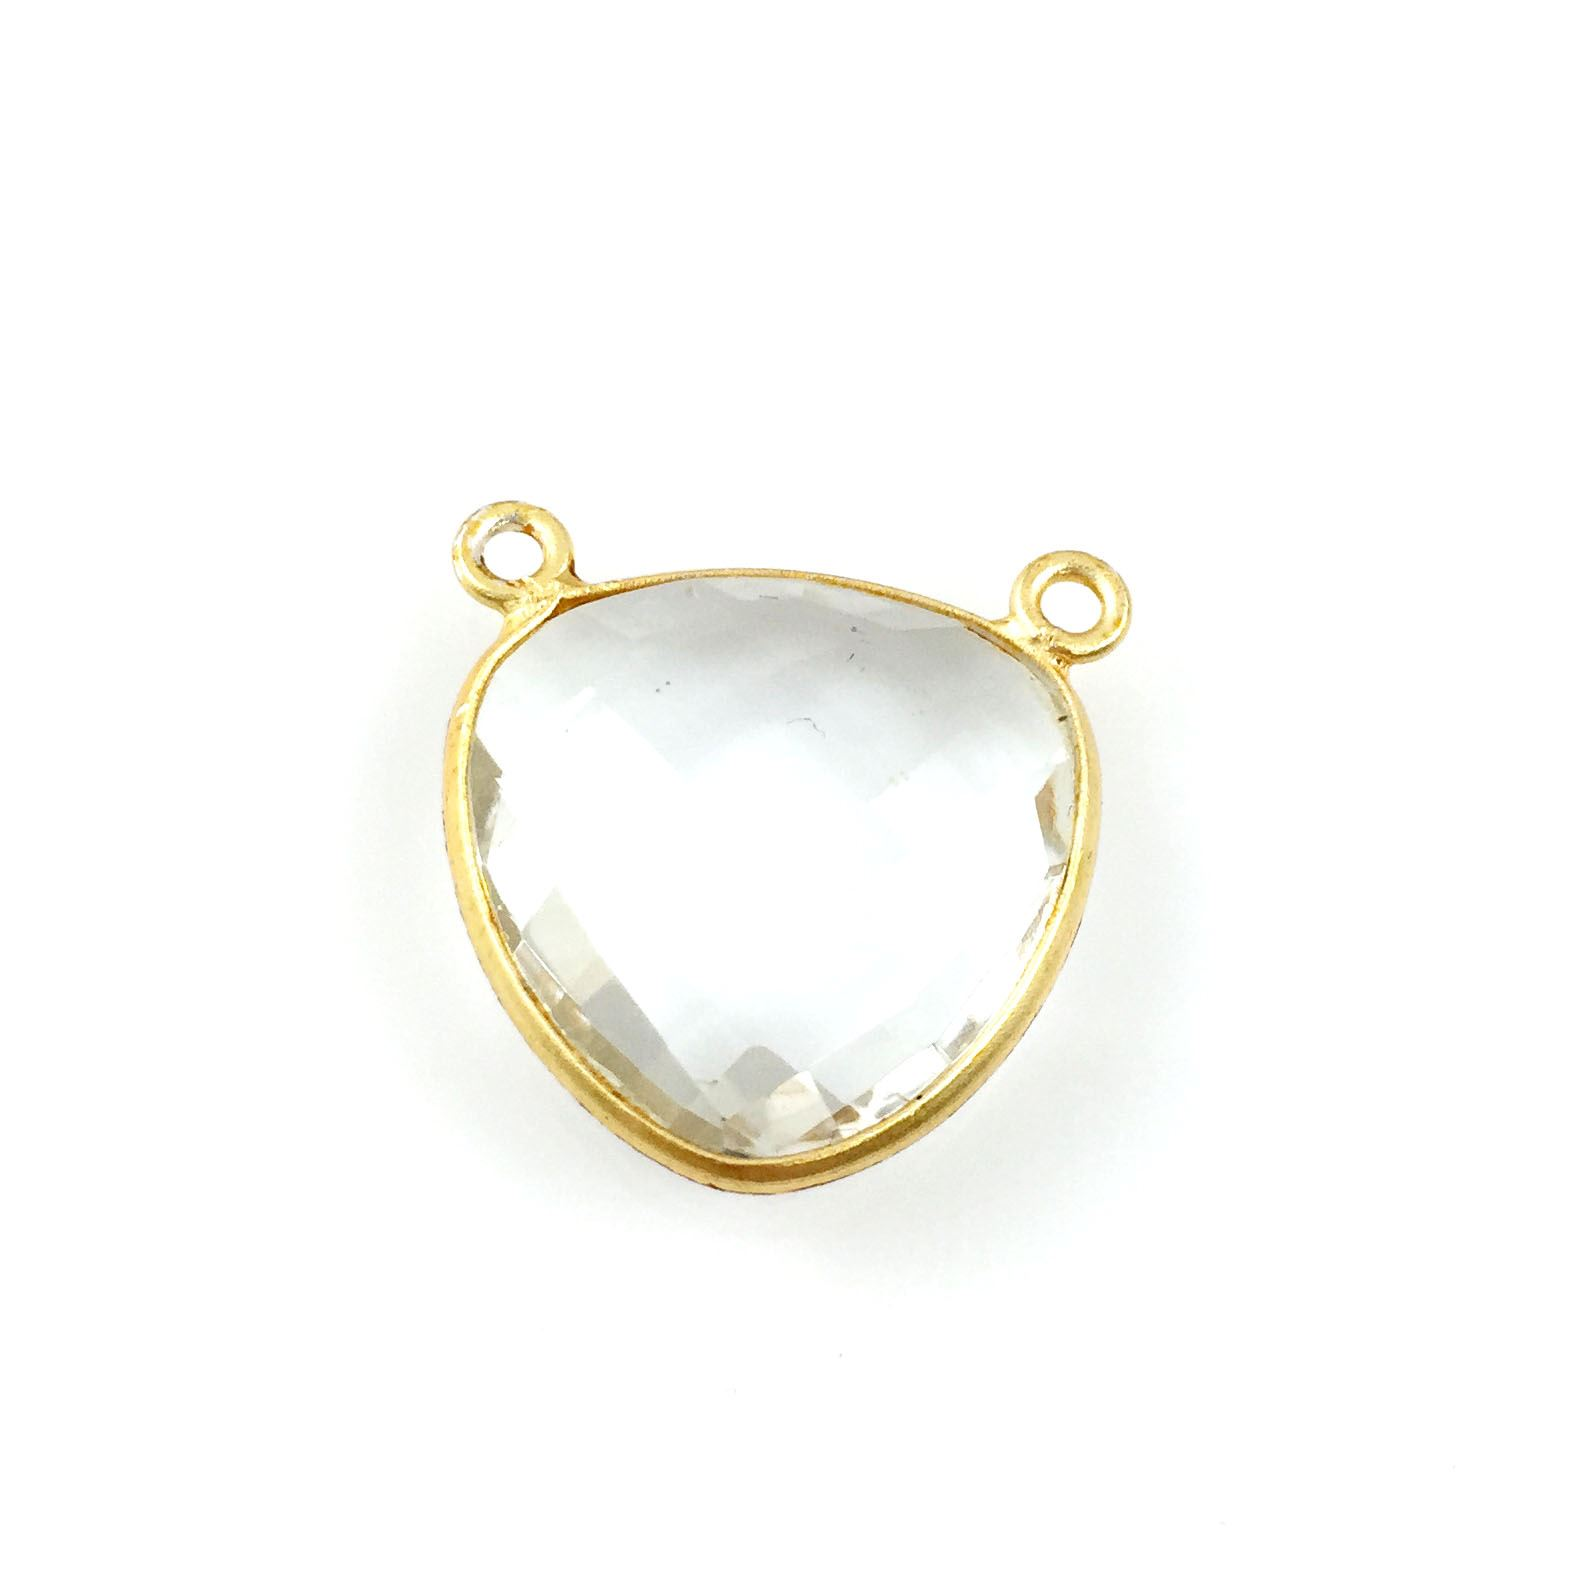 Bezel Gemstone Connector Pendant - Crystal Quartz- Gold plated Sterling Silver - Large Trillion Shaped Faceted - 18 mm - 1 piece